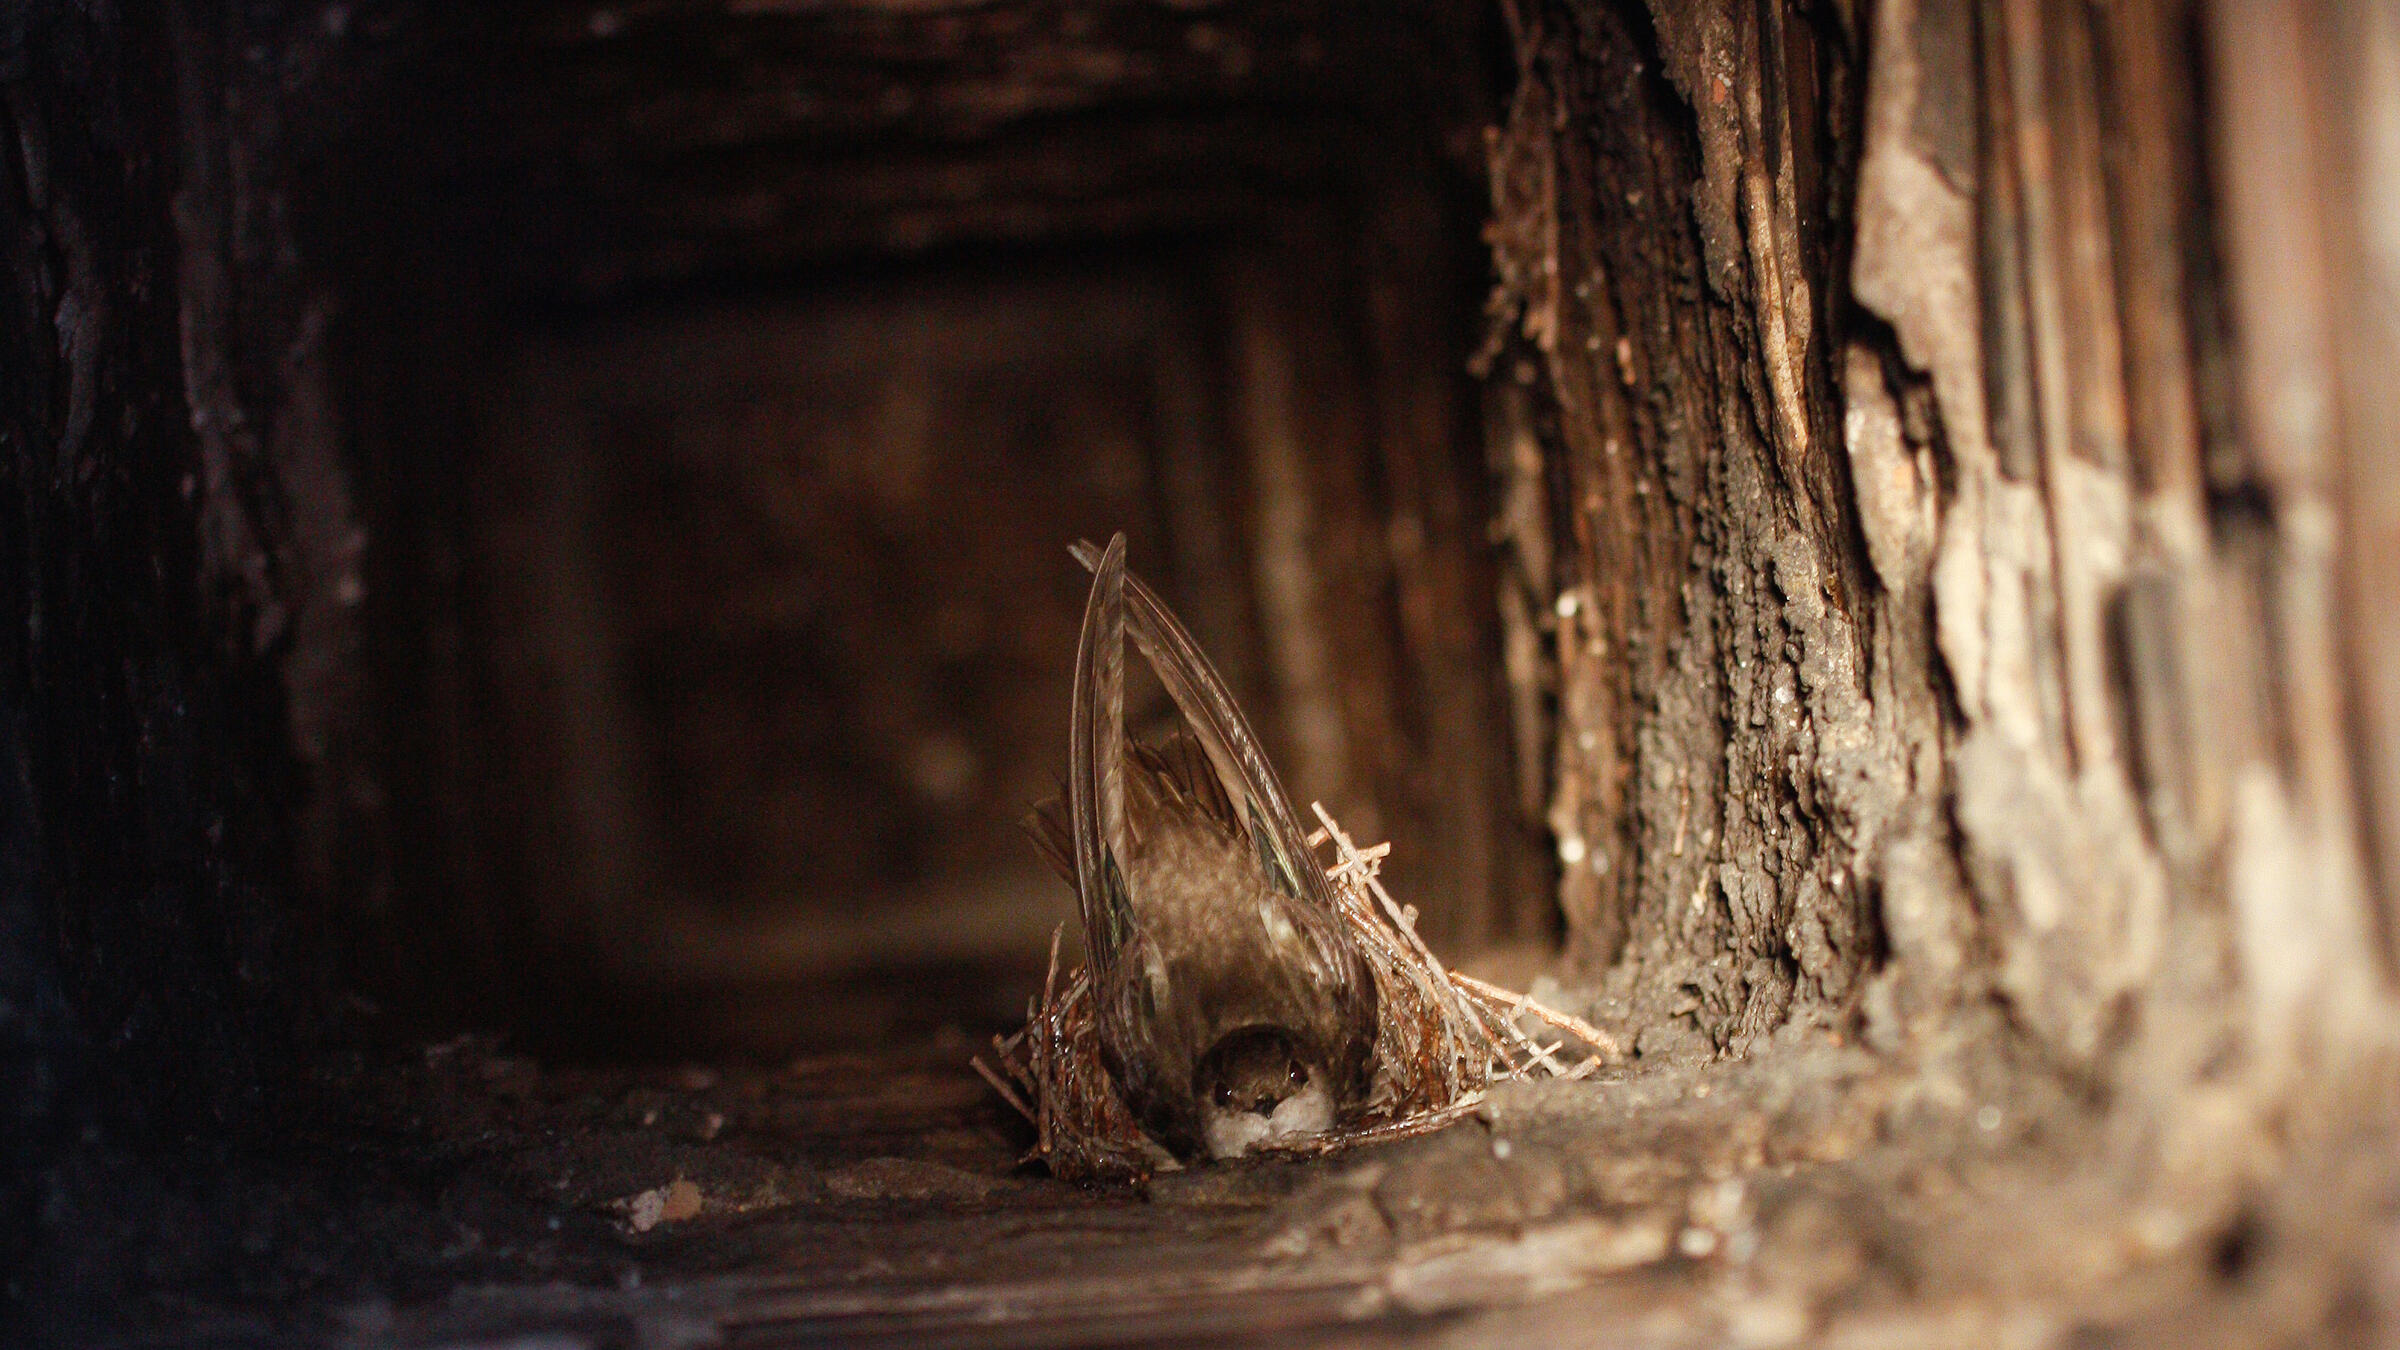 A Chimney Swift uses its saliva to stick its nest to the inside of a chimney. Bruce Di Labio